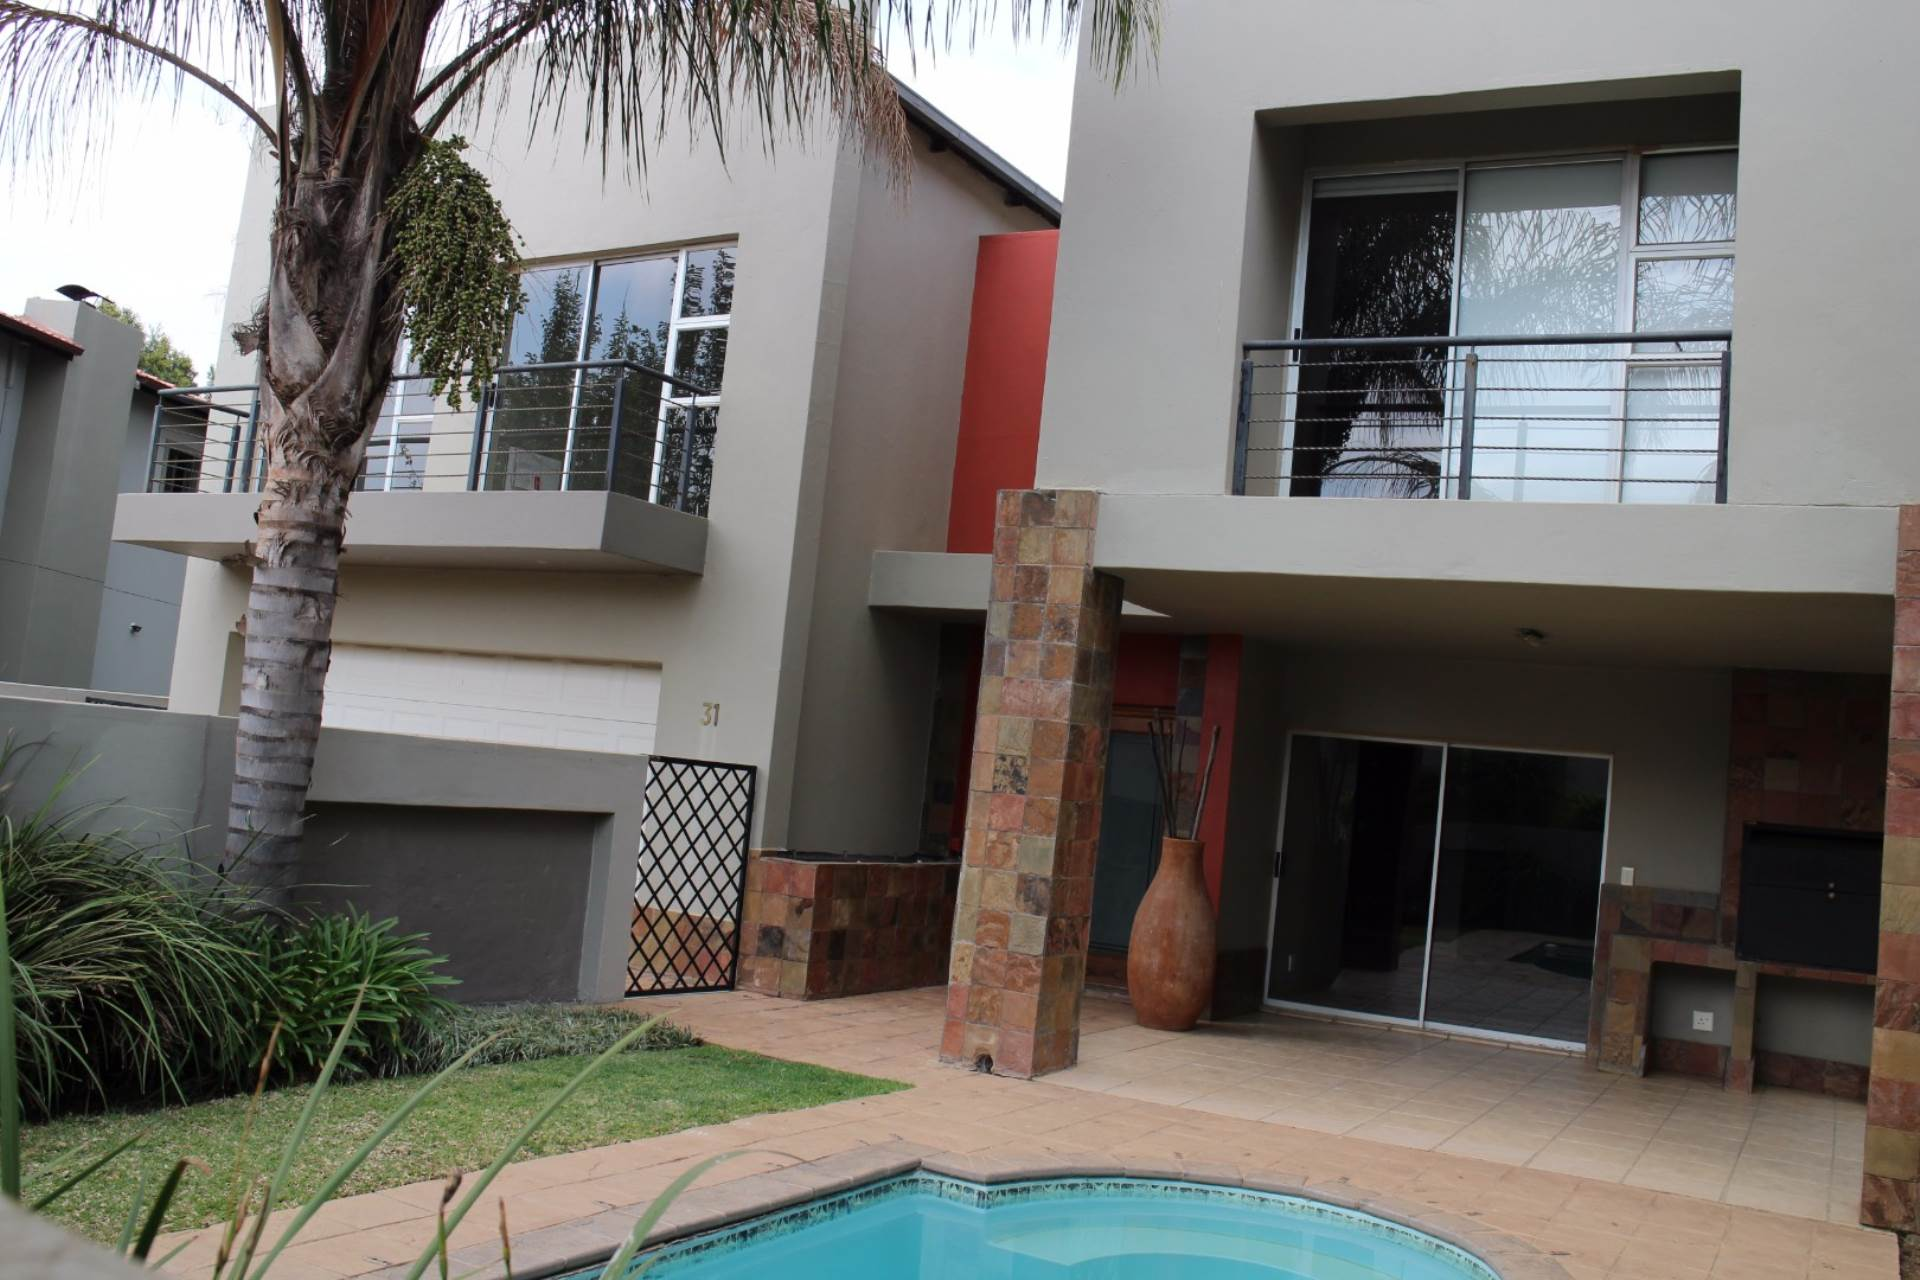 Six Fountains Residential Estate property for sale. Ref No: 13534211. Picture no 1